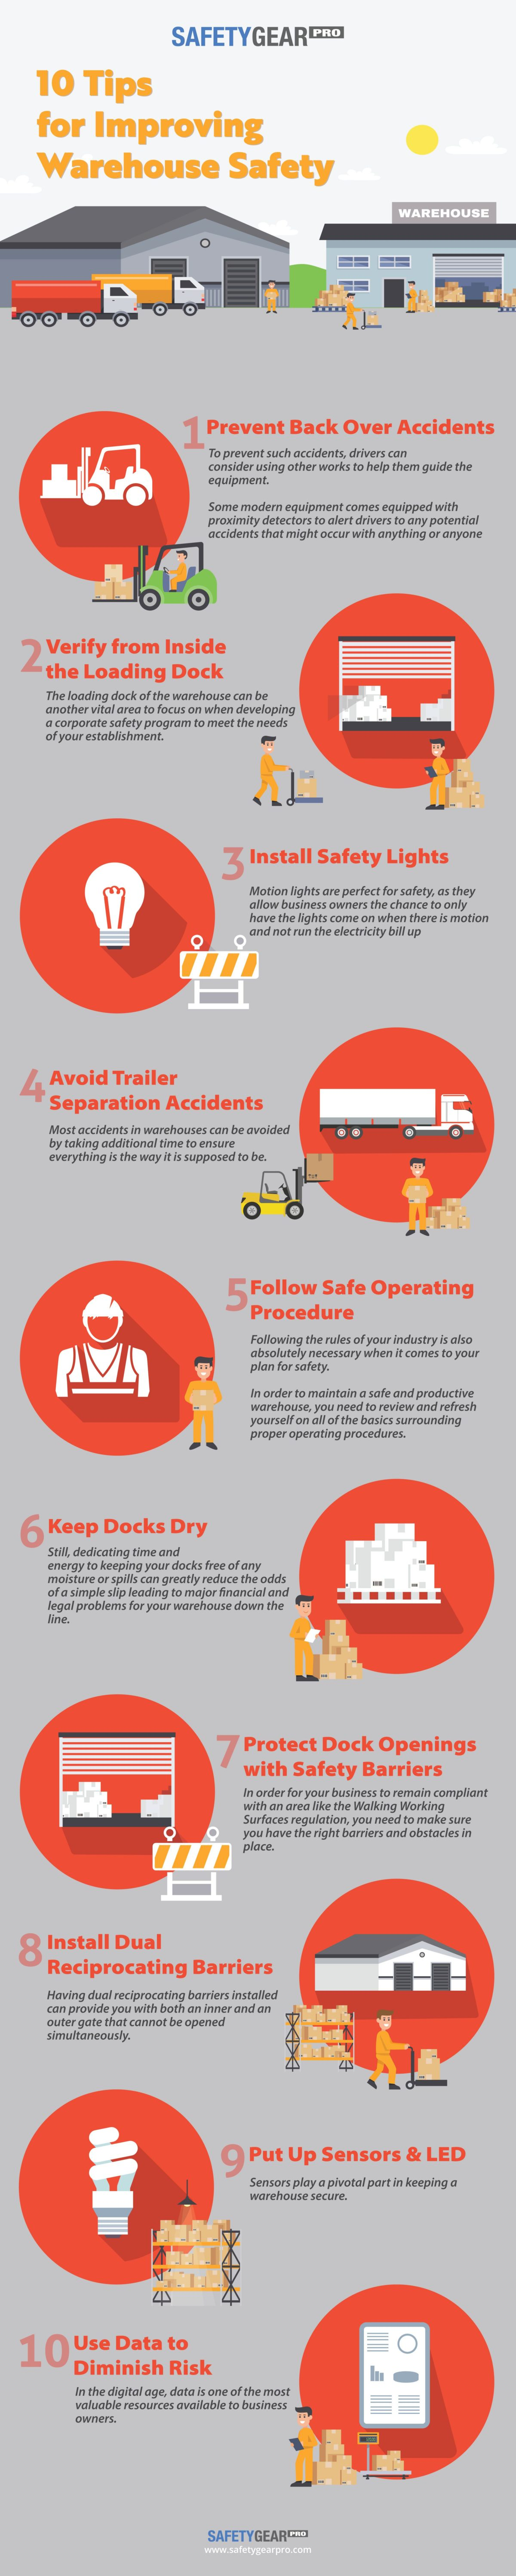 10 Essential Tips for Improving Warehouse Safety